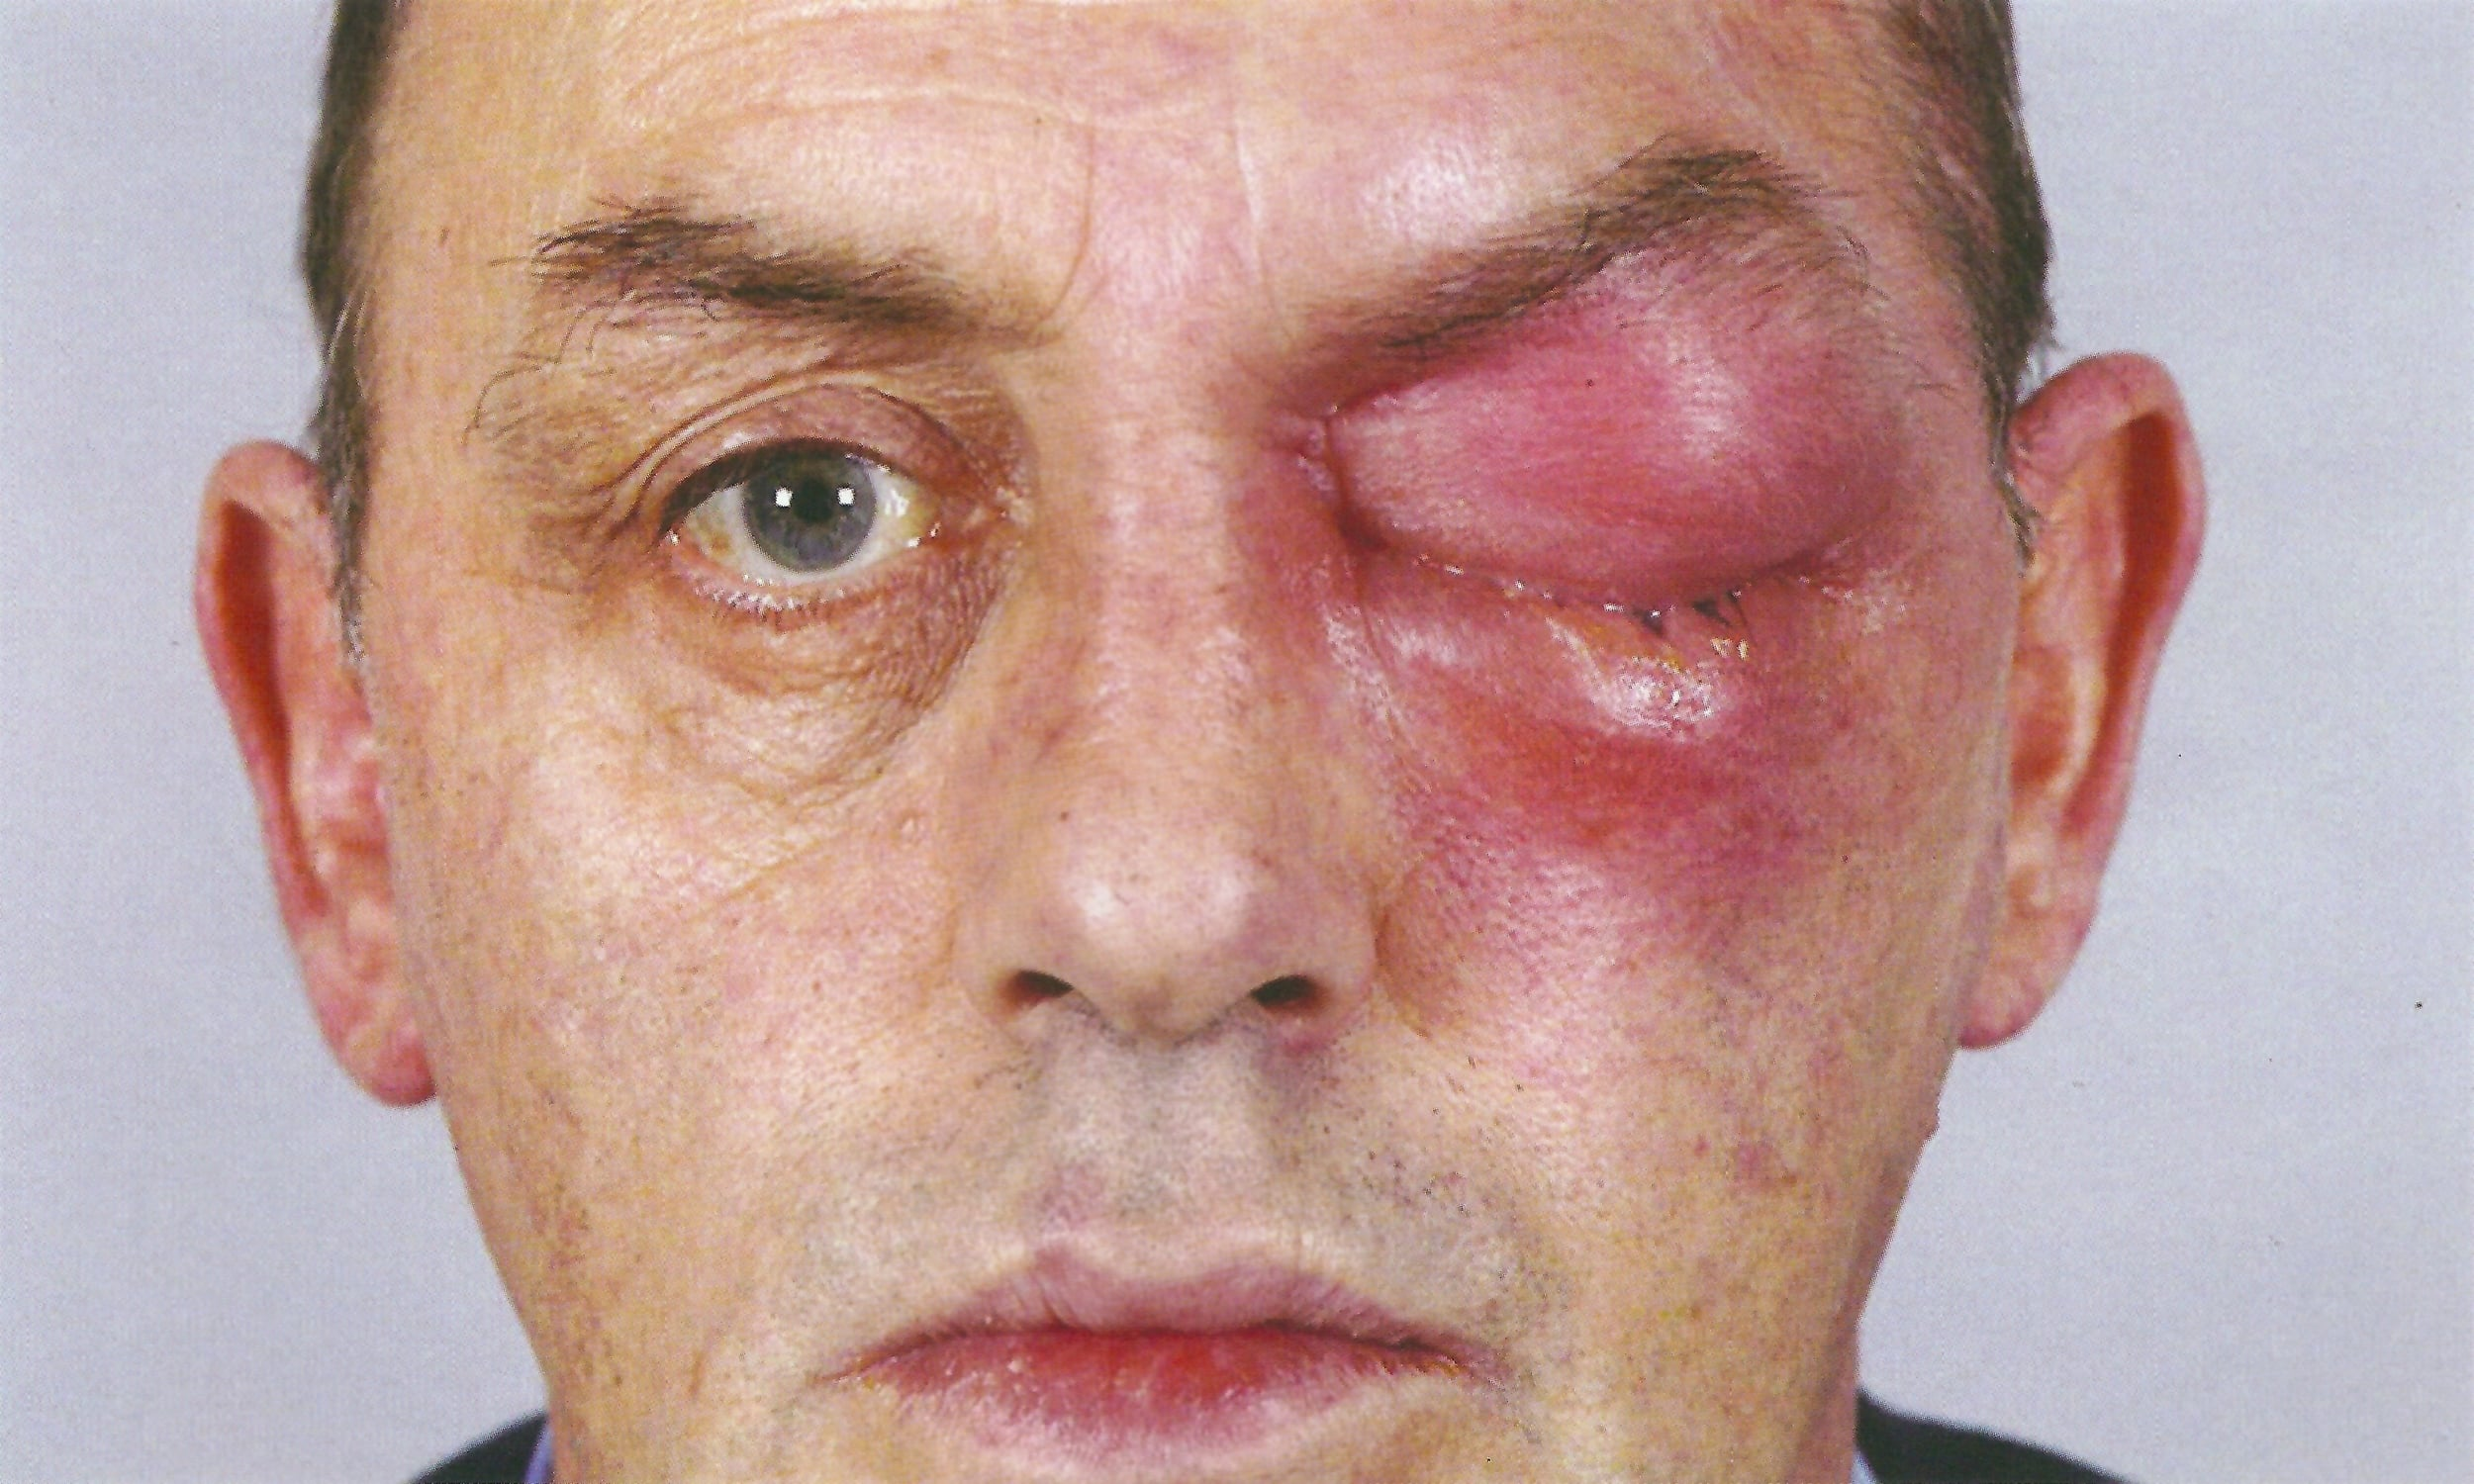 Photo: left post-septal (Chandler II) or orbital cellulitis. Note how the erythema involves the brow, orbit and maxilla.